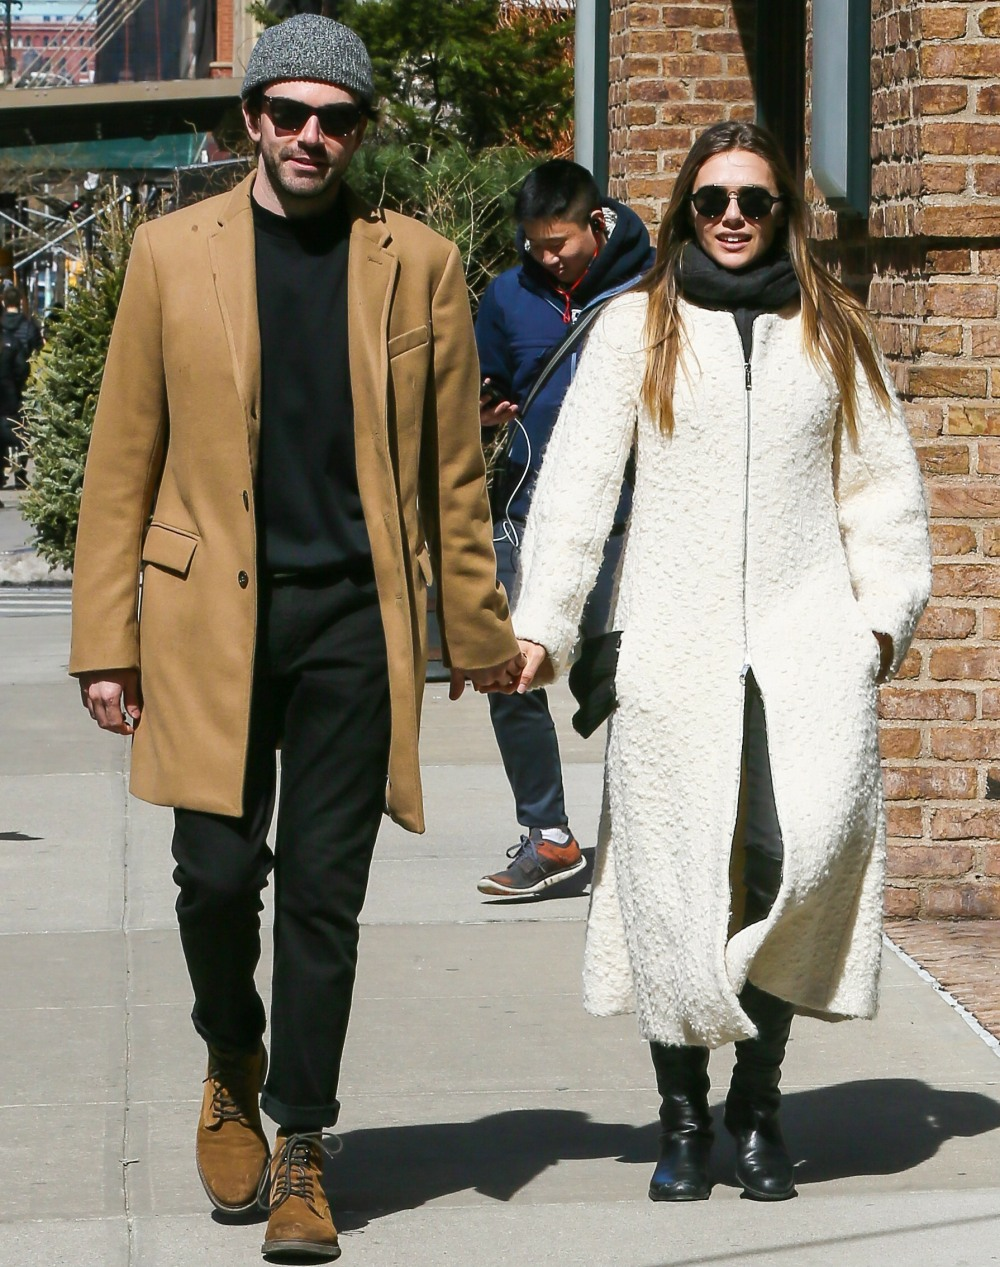 Elizabeth Olsen holding hands with a mystery guy out for a walk in New York